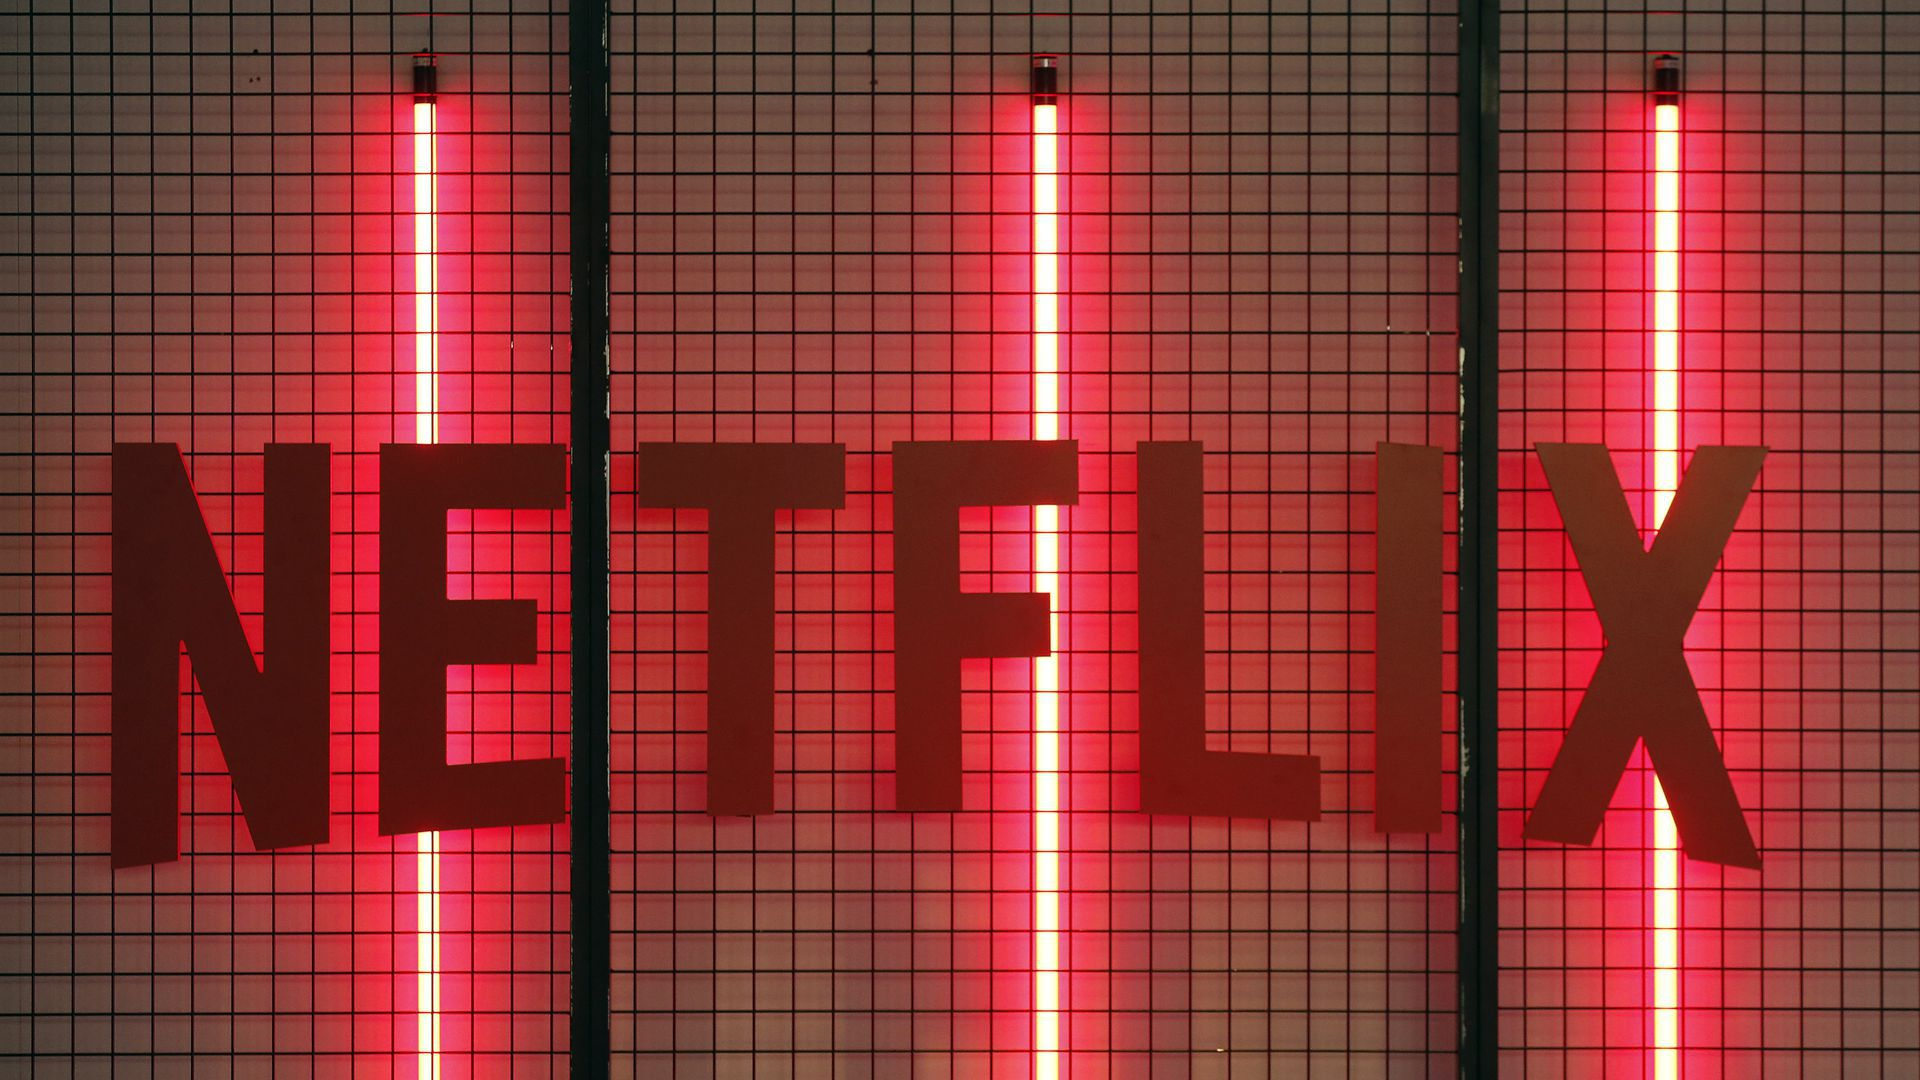 Netflix raises prices for all 3 subscription tiers - Axios